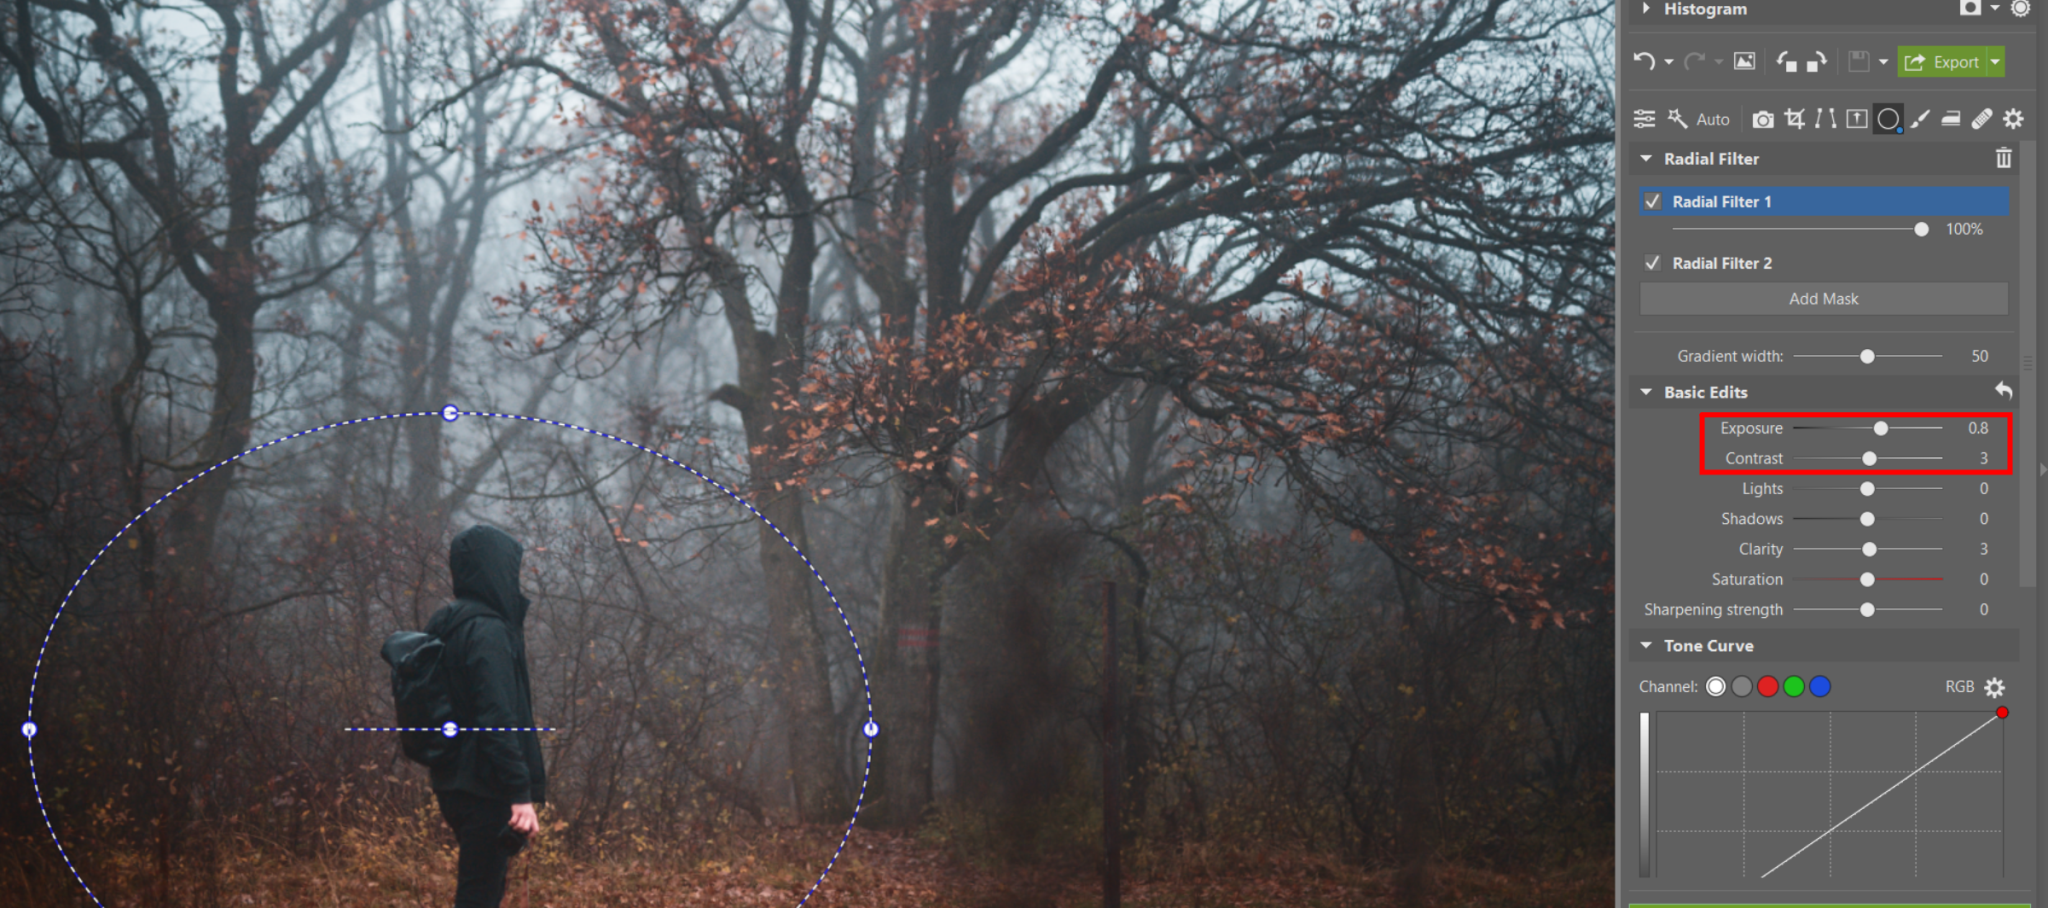 Photographing fog - Get a mysterious atmosphere in your photos. We'll tell you how to get the right shots and edits